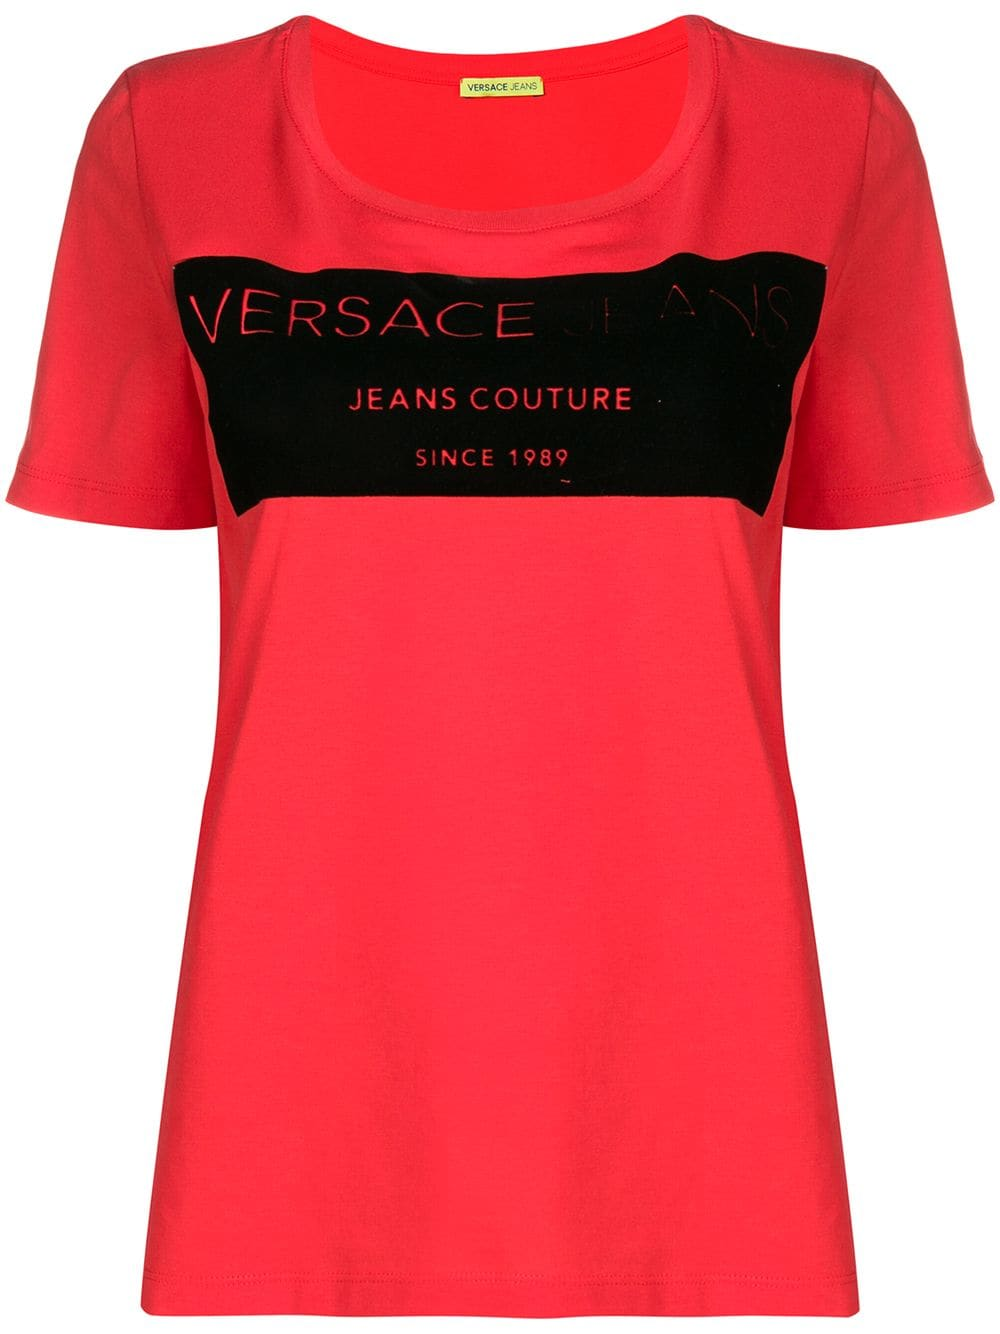 961b2f8f4b2e1 versace-jeans-basic-logo-t-shirt-pink-farfetch-com-photo.jpg?1547107338